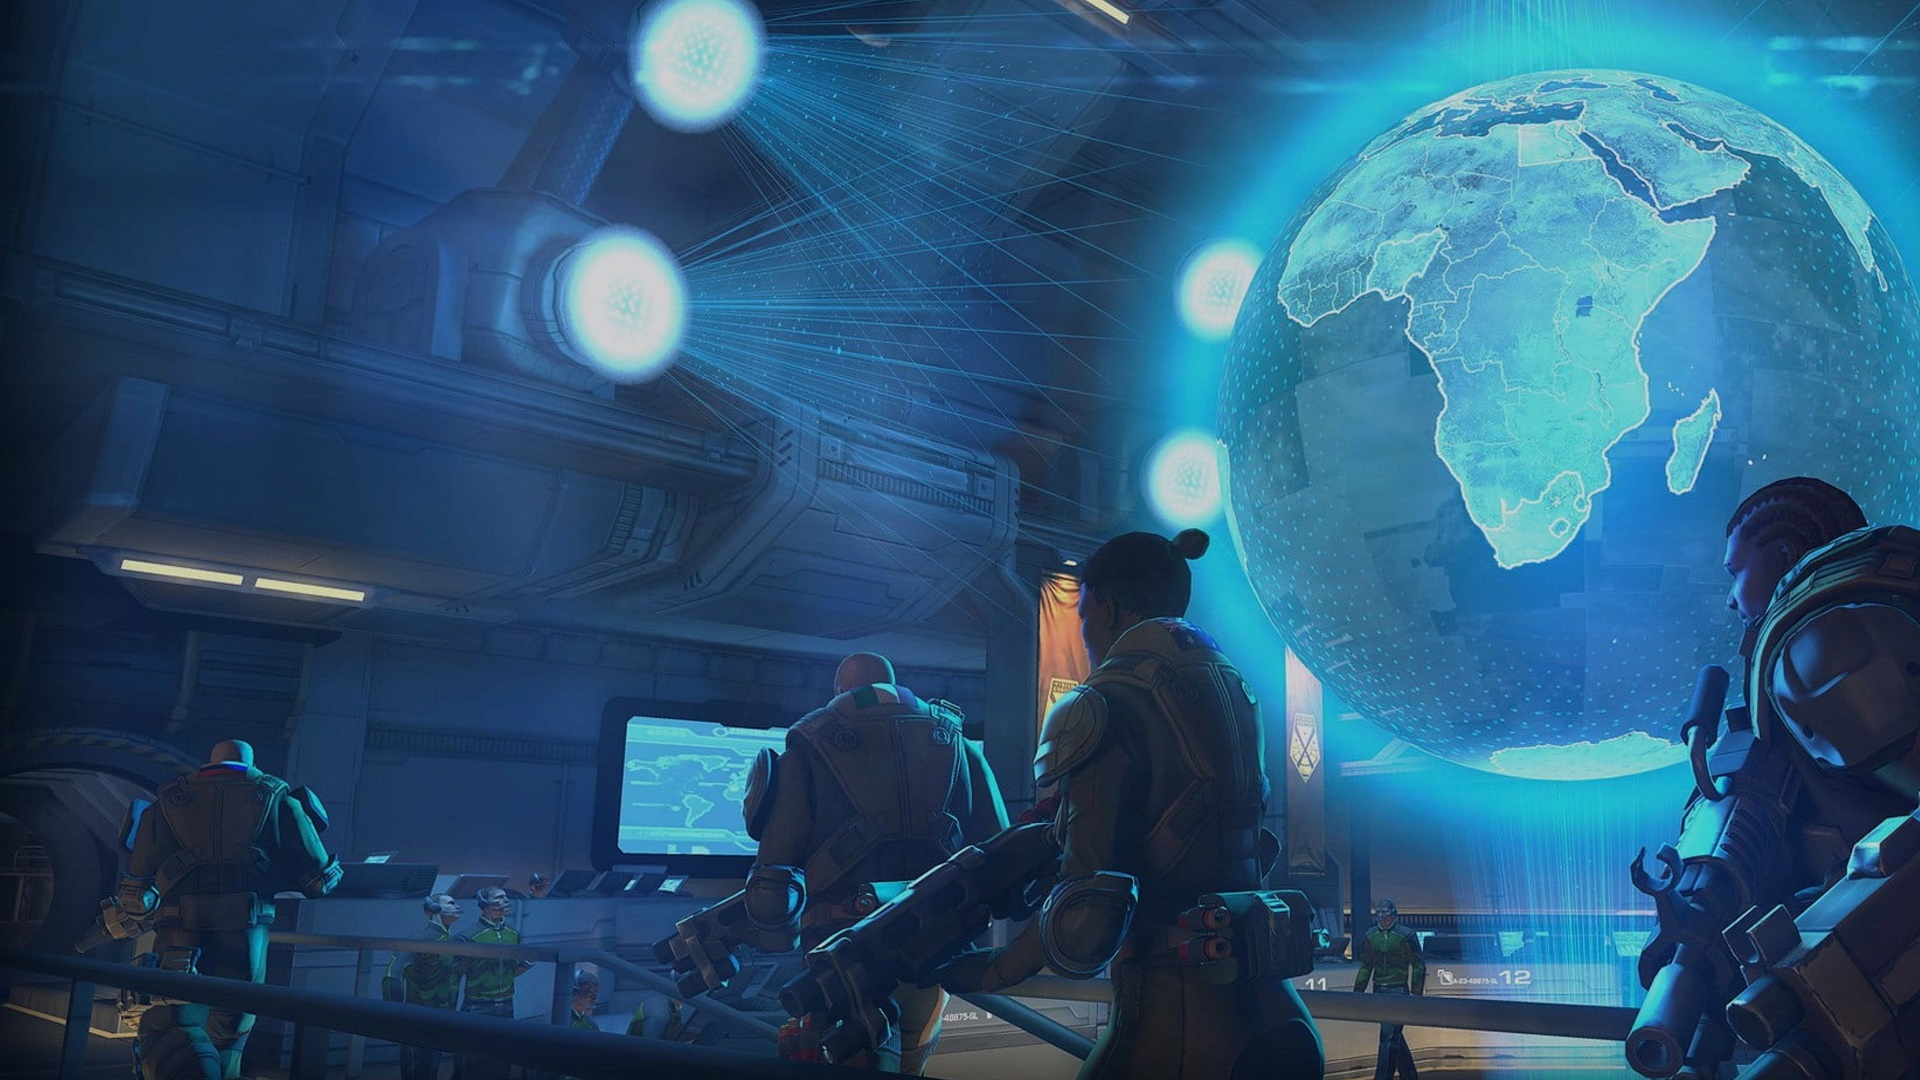 XCOM 3 wishlist: everything fans want from a new XCOM game